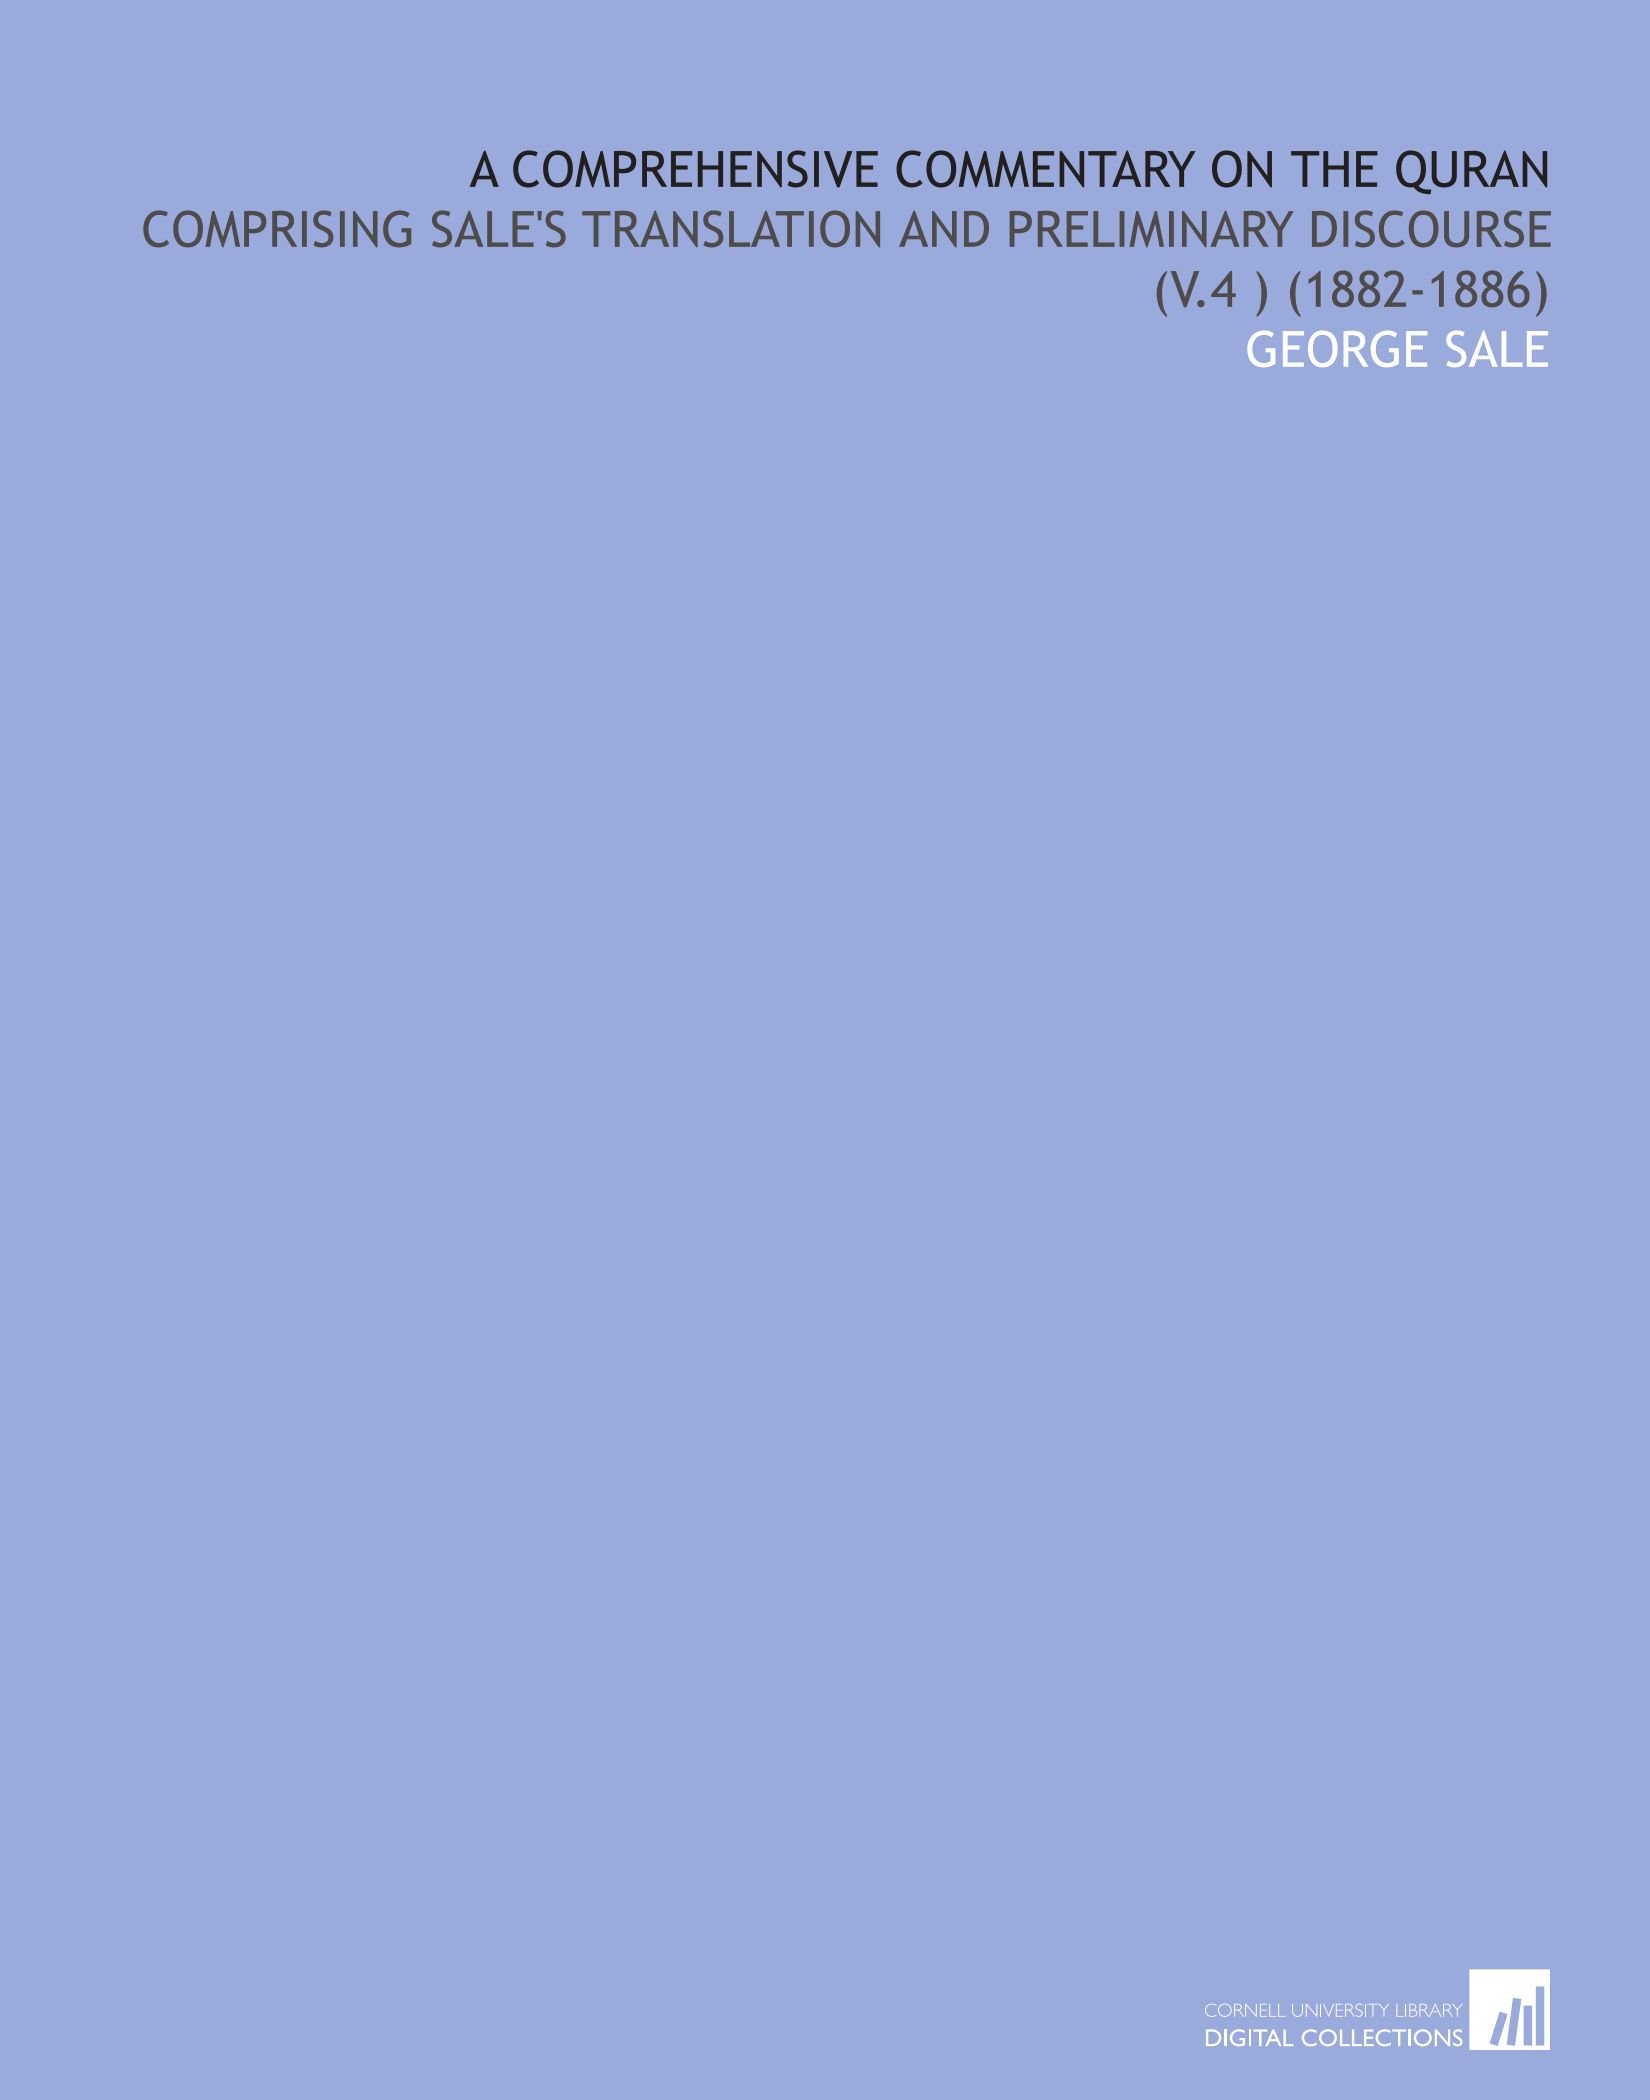 Download A Comprehensive Commentary on the Quran: Comprising Sale's Translation and Preliminary Discourse (V.4) (1882-1886) ebook